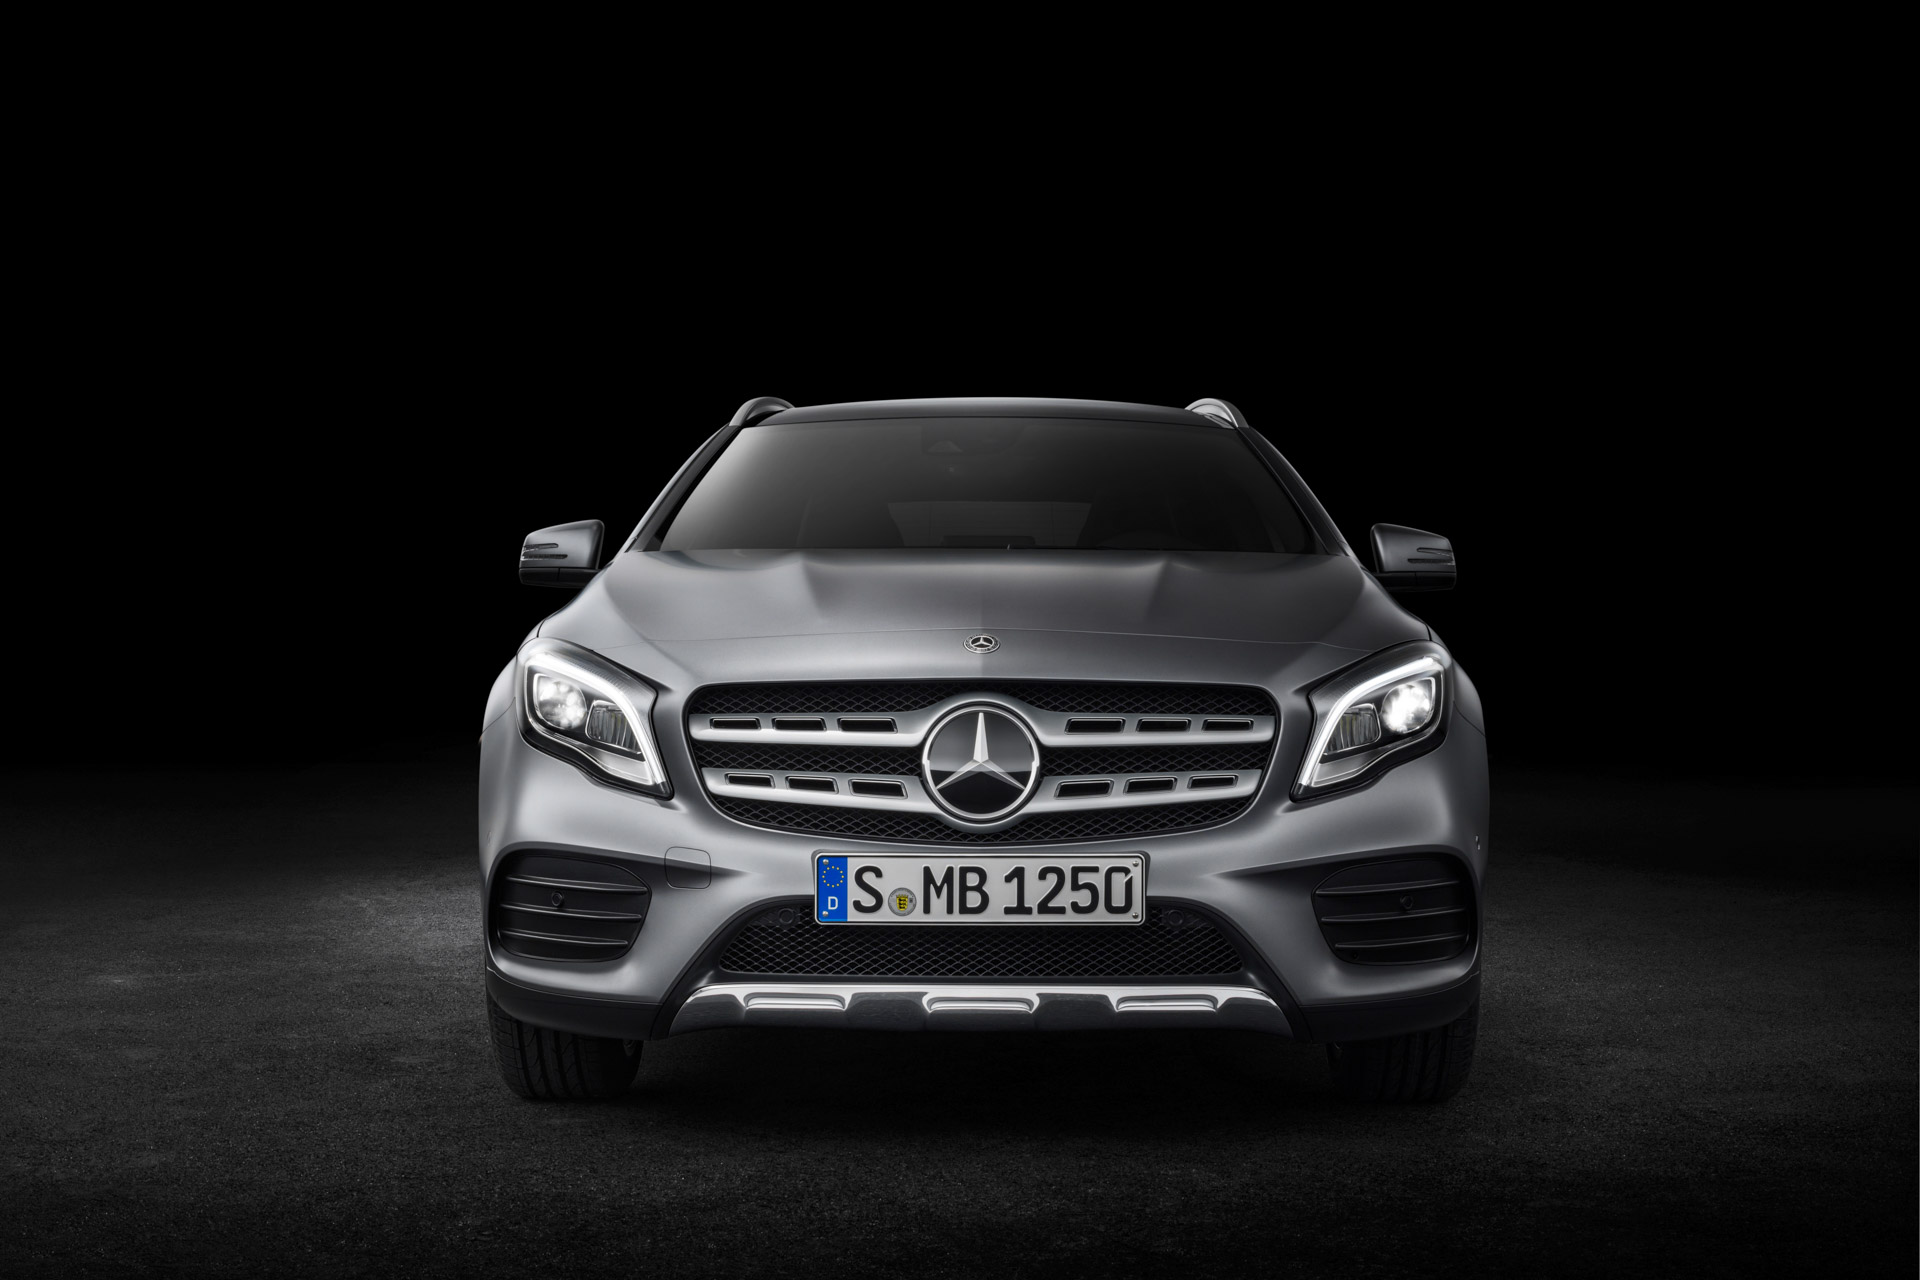 Mercedes-Benz GLA 250 4MATIC, AMG Line, Mountaingrau magno, Studioaufnahme ;Kraftstoffverbrauch kombiniert: 6,5 l/100 km, CO2-Emissionen kombiniert: 152 g/km Mercedes-Benz GLA 250 4MATIC, AMG Line, mountain grey magno, studio shot; Fuel consumption combined:  6.5 l/100 km; Combined CO2 emissions: 152 g/km